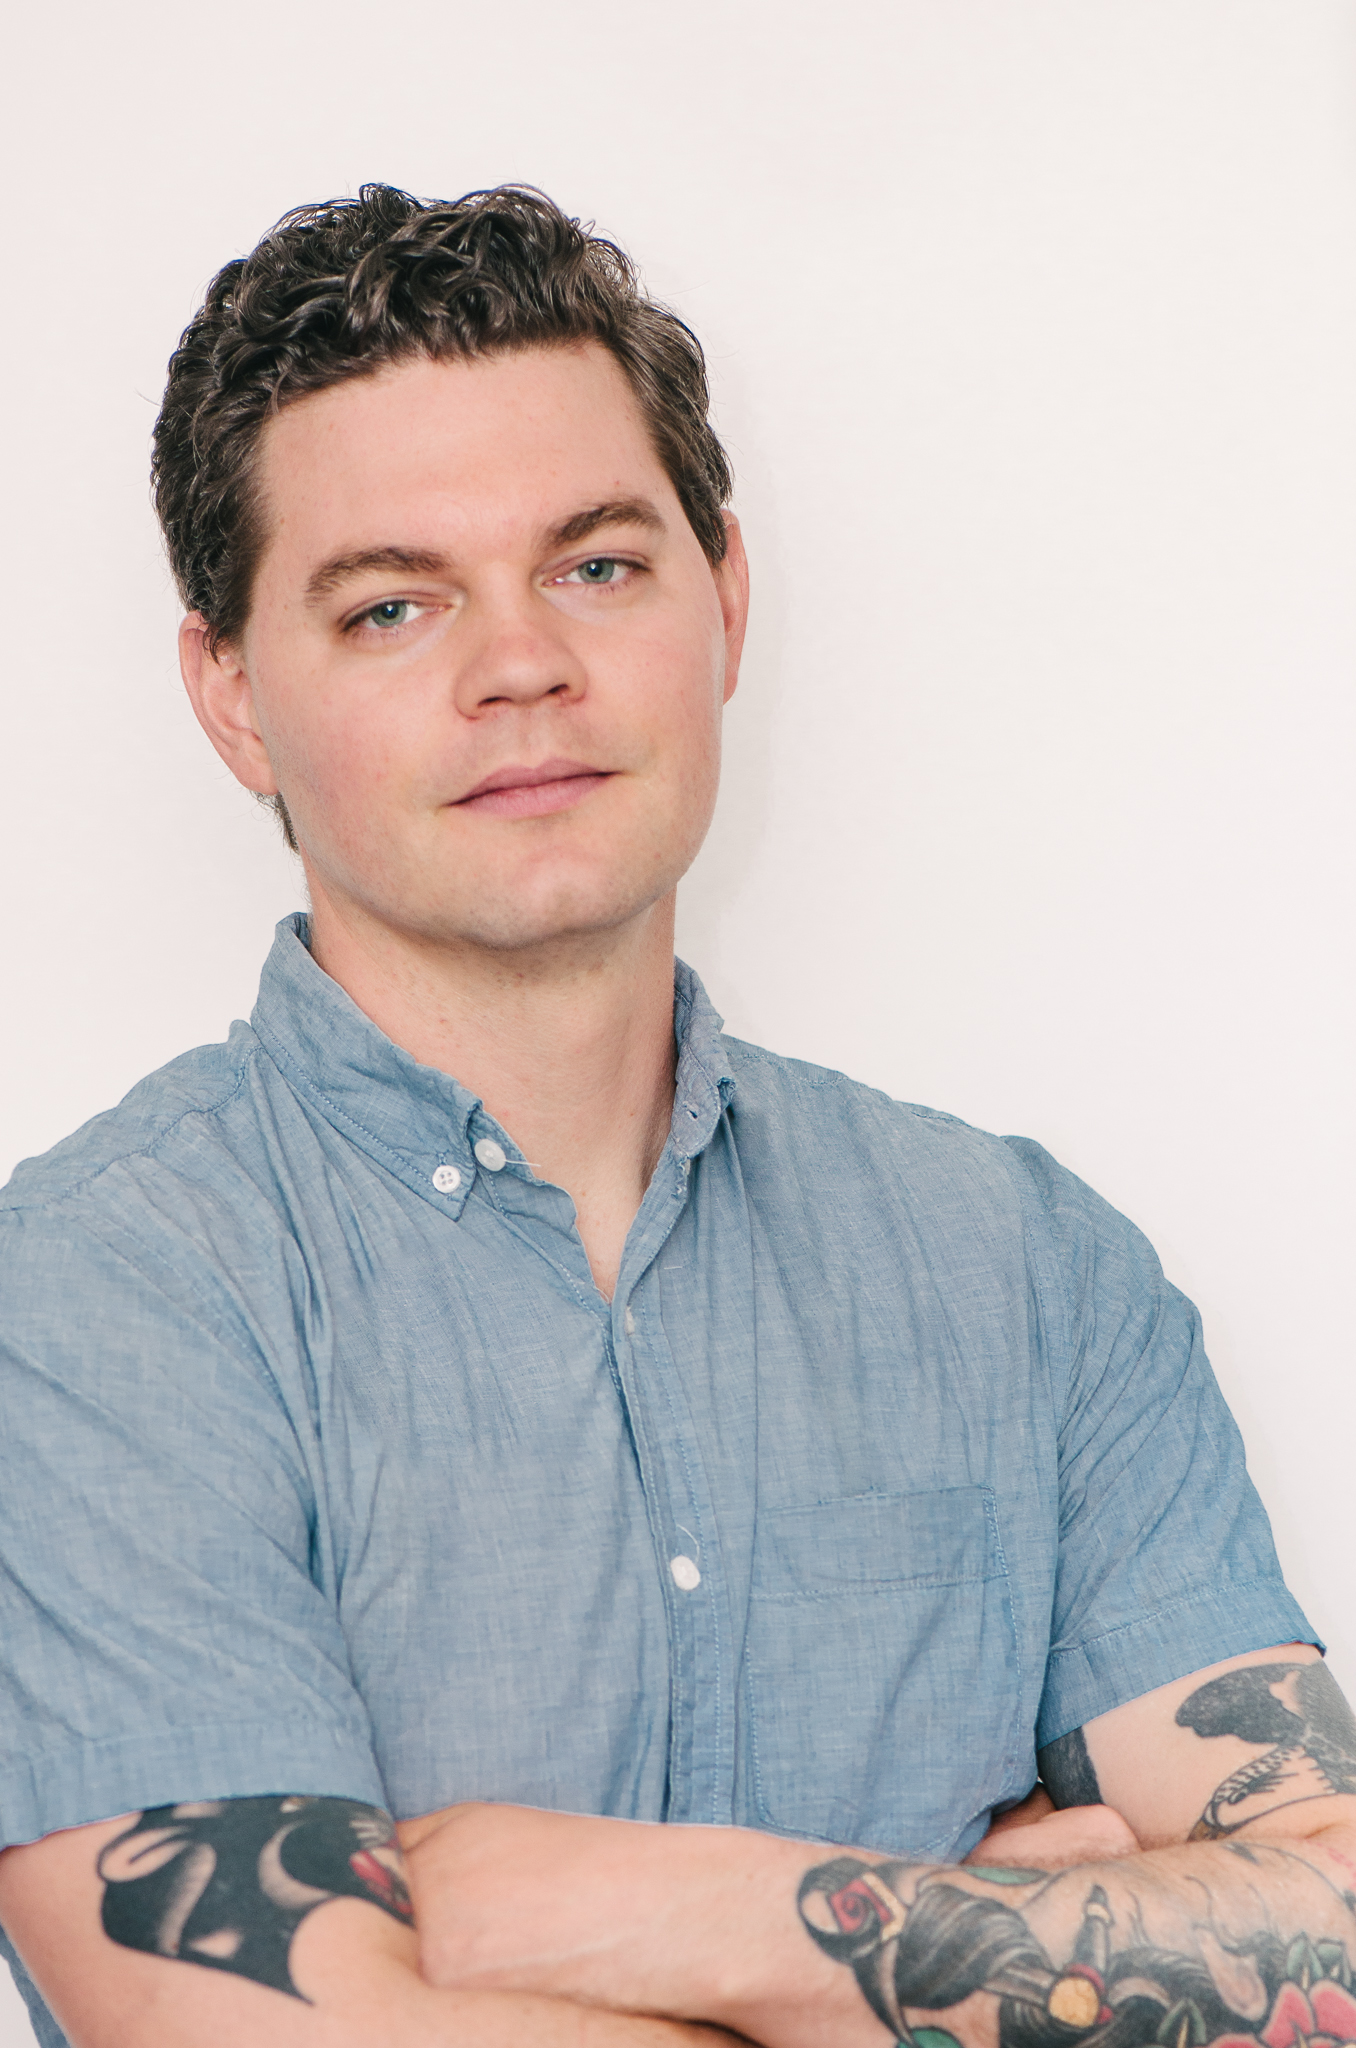 Photo of Aaron Withers, Co-Founder and Director of Delivery Co-op